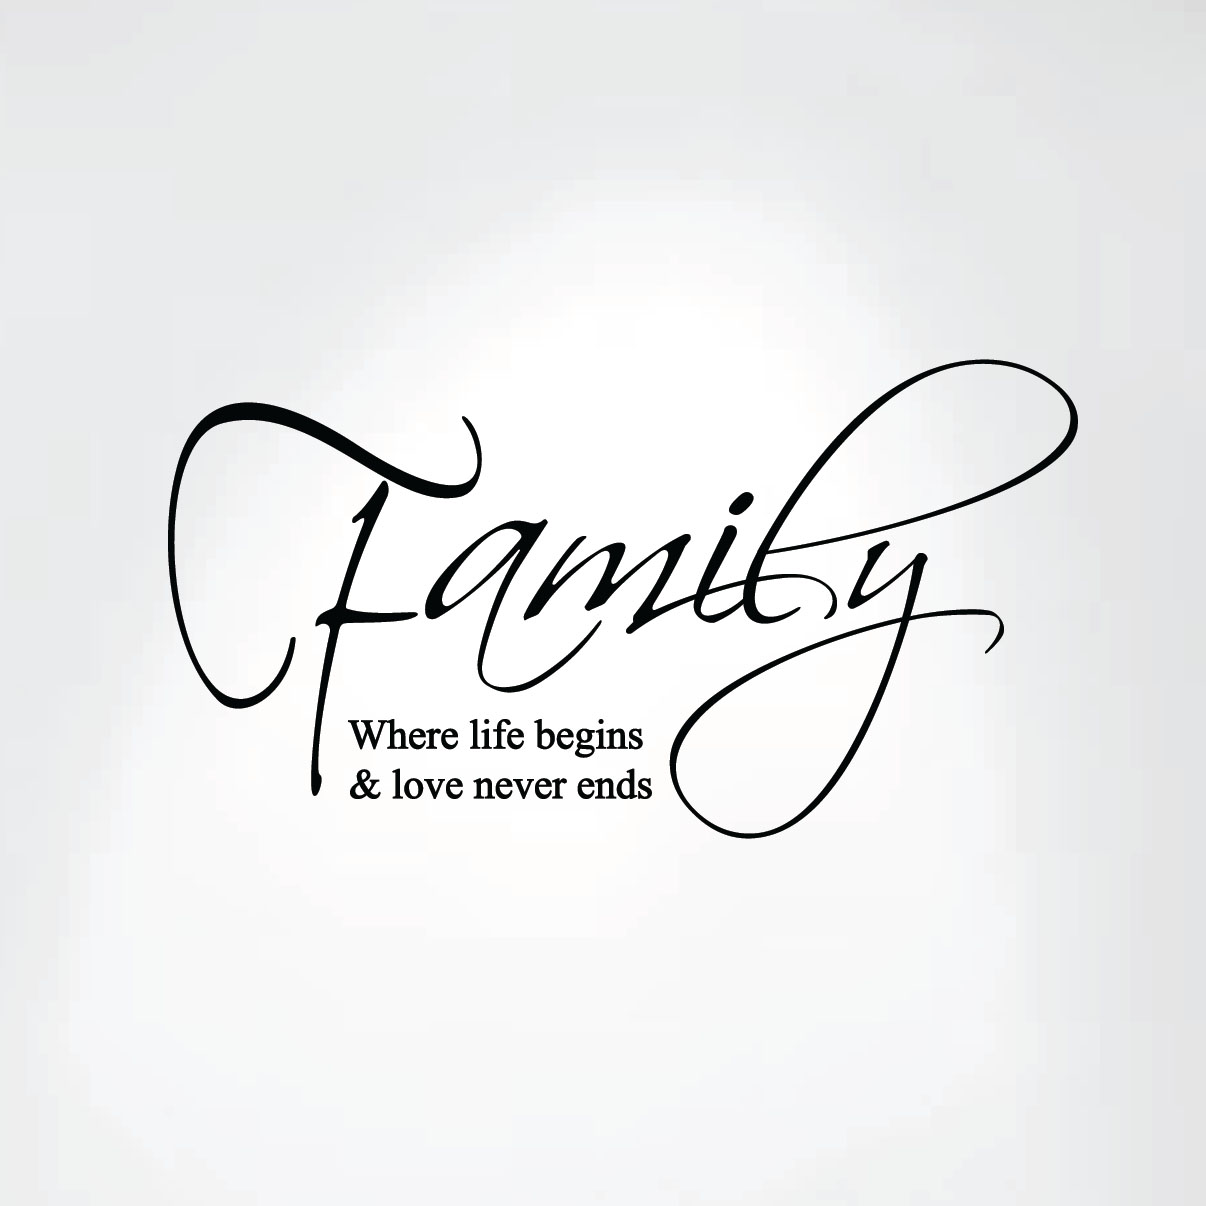 1258-family-where-life-begins-and-love-never-ends-close.jpg